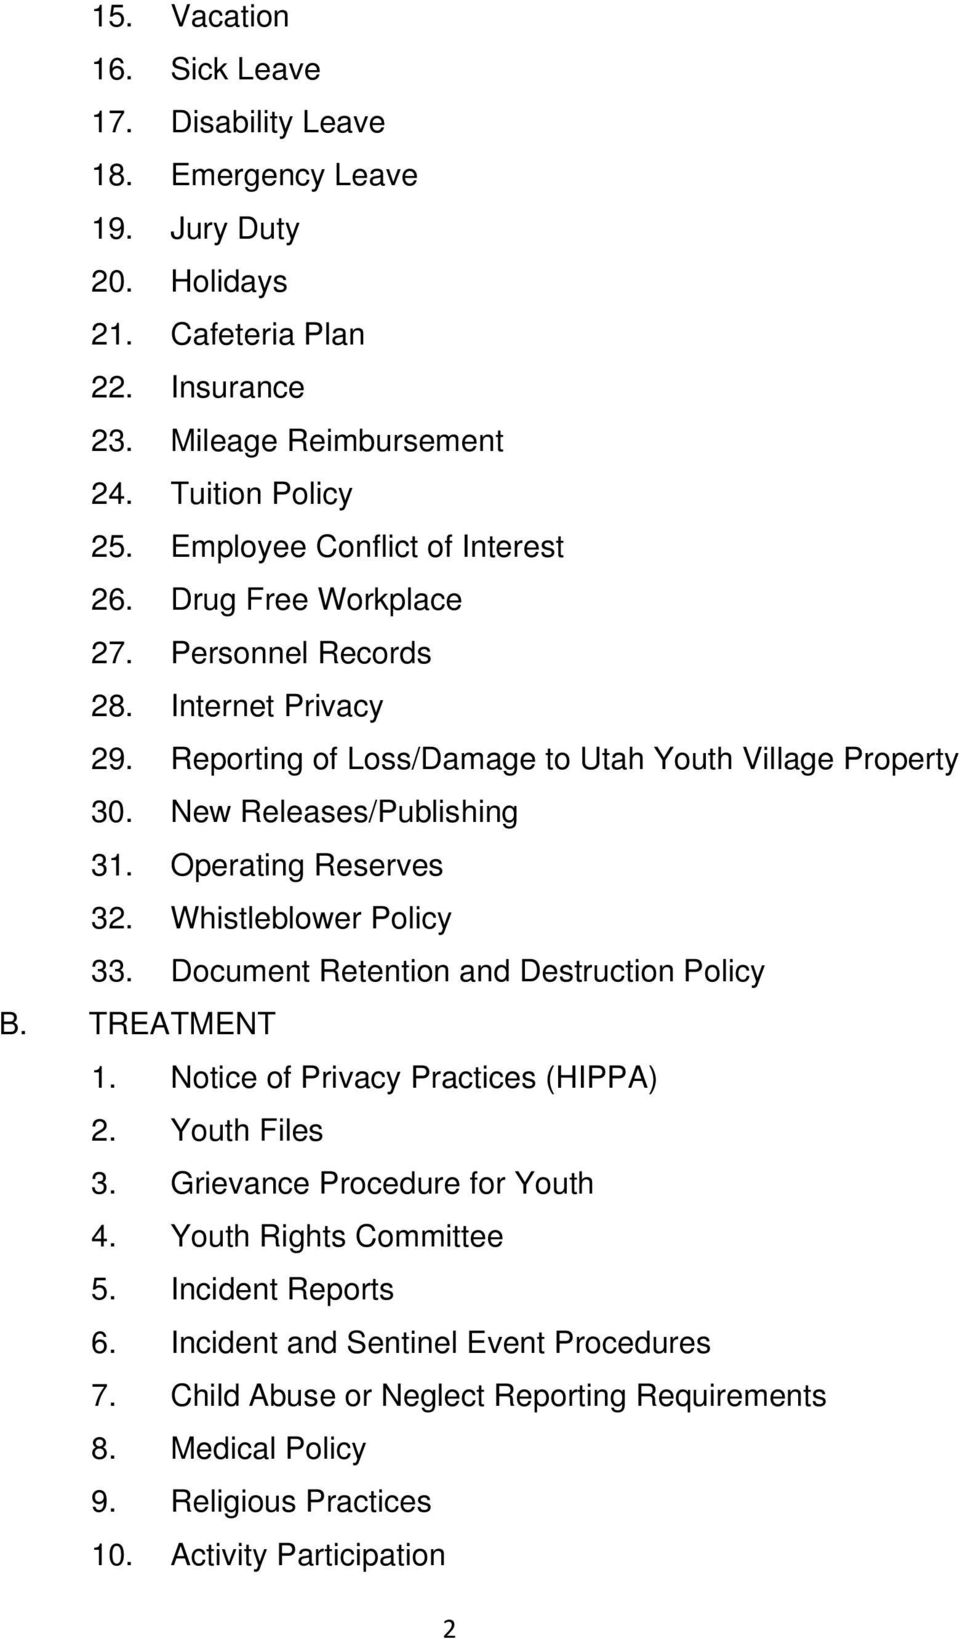 Operating Reserves 32. Whistleblower Policy 33. Document Retention and Destruction Policy B. TREATMENT 1. Notice of Privacy Practices (HIPPA) 2. Youth Files 3.